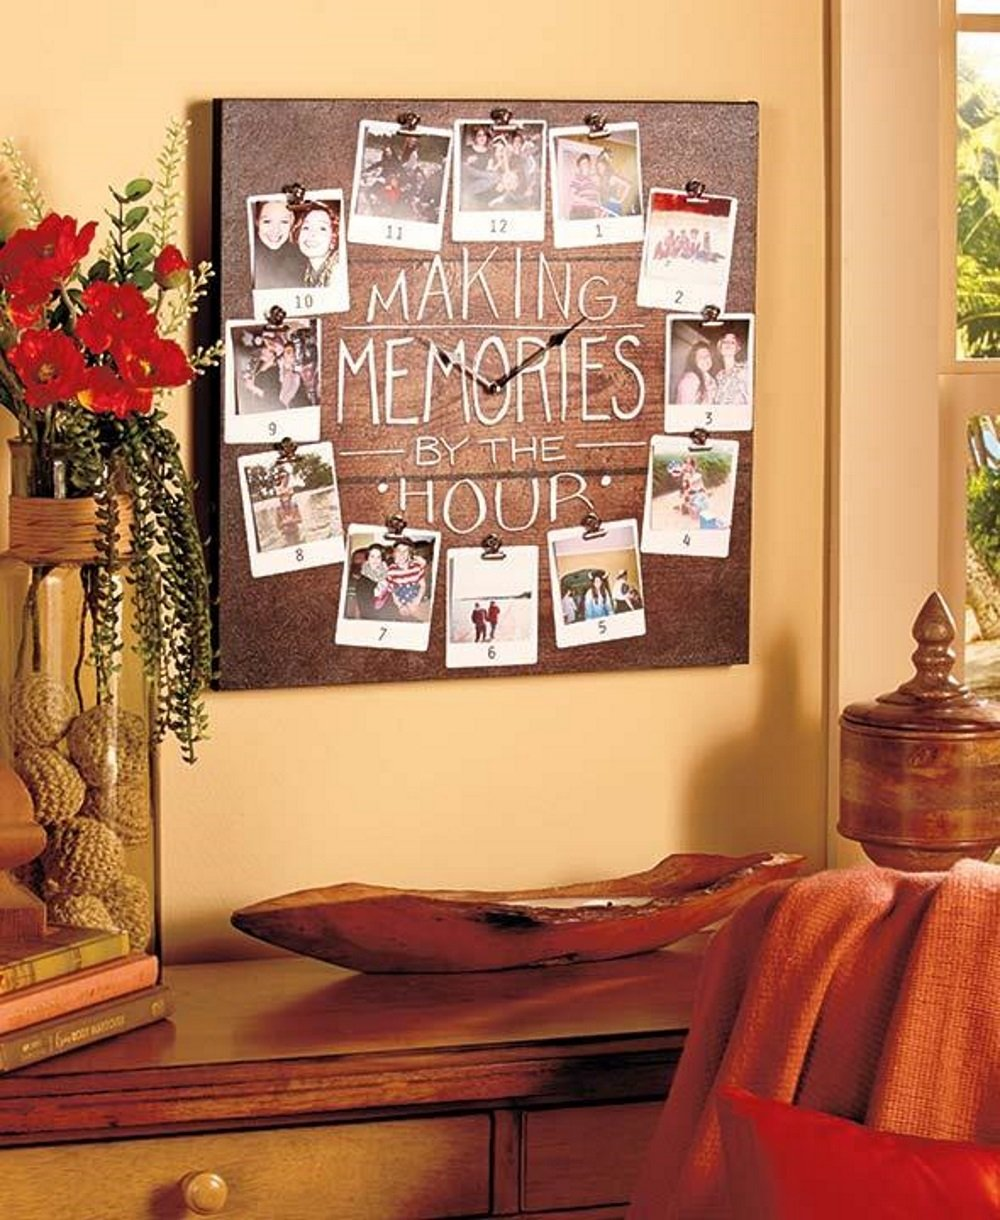 Amazon lakeside collection 892041013 making memories photo amazon lakeside collection 892041013 making memories photo wall clock home kitchen jeuxipadfo Images